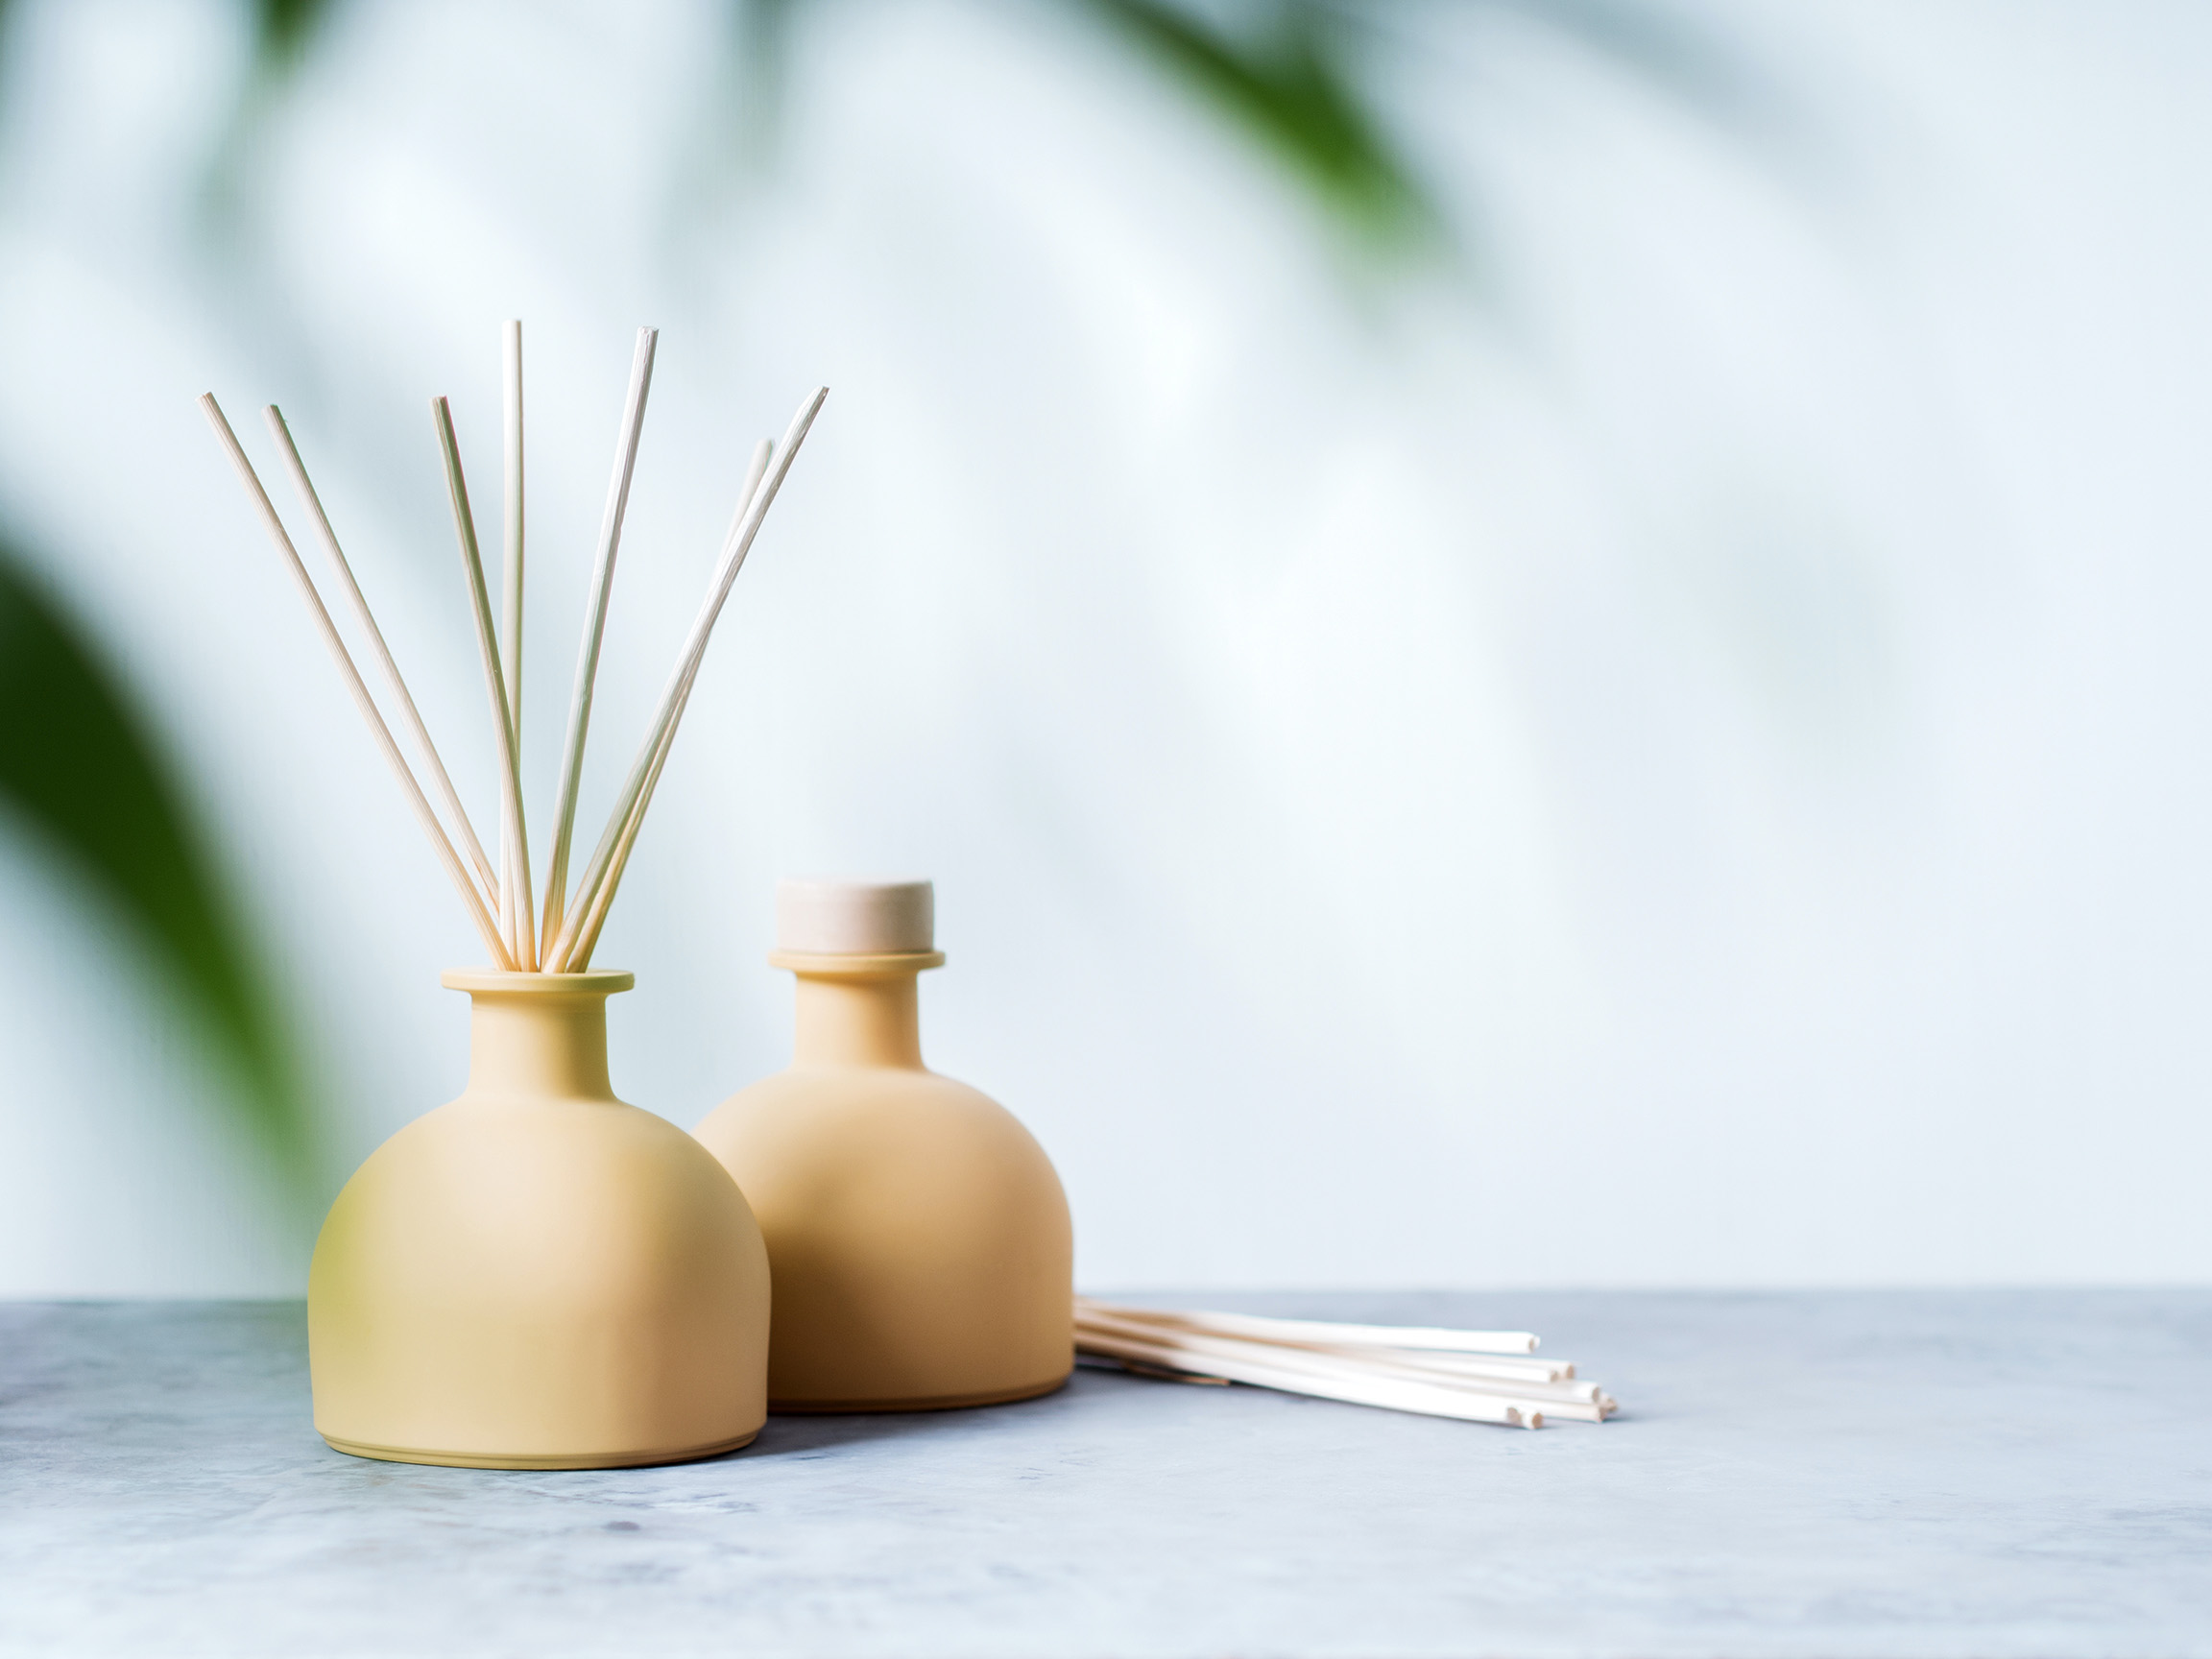 Parfums plus - aroma reed diffuser home fragrance with rattan sticks on a light